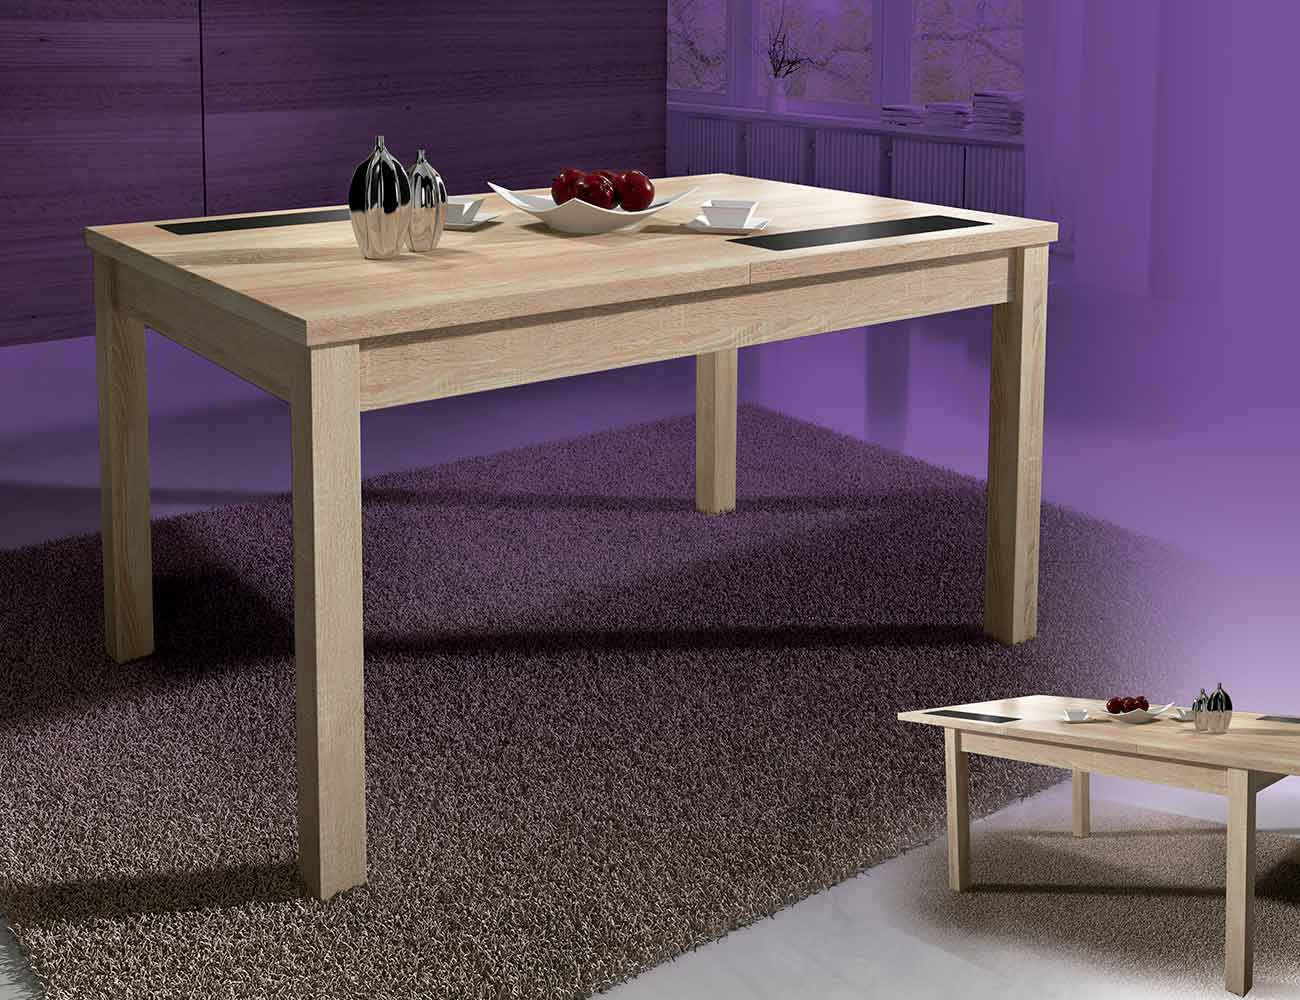 Mesa comedor extensible con cristables color cambrian for Mesas extensibles madera para comedor